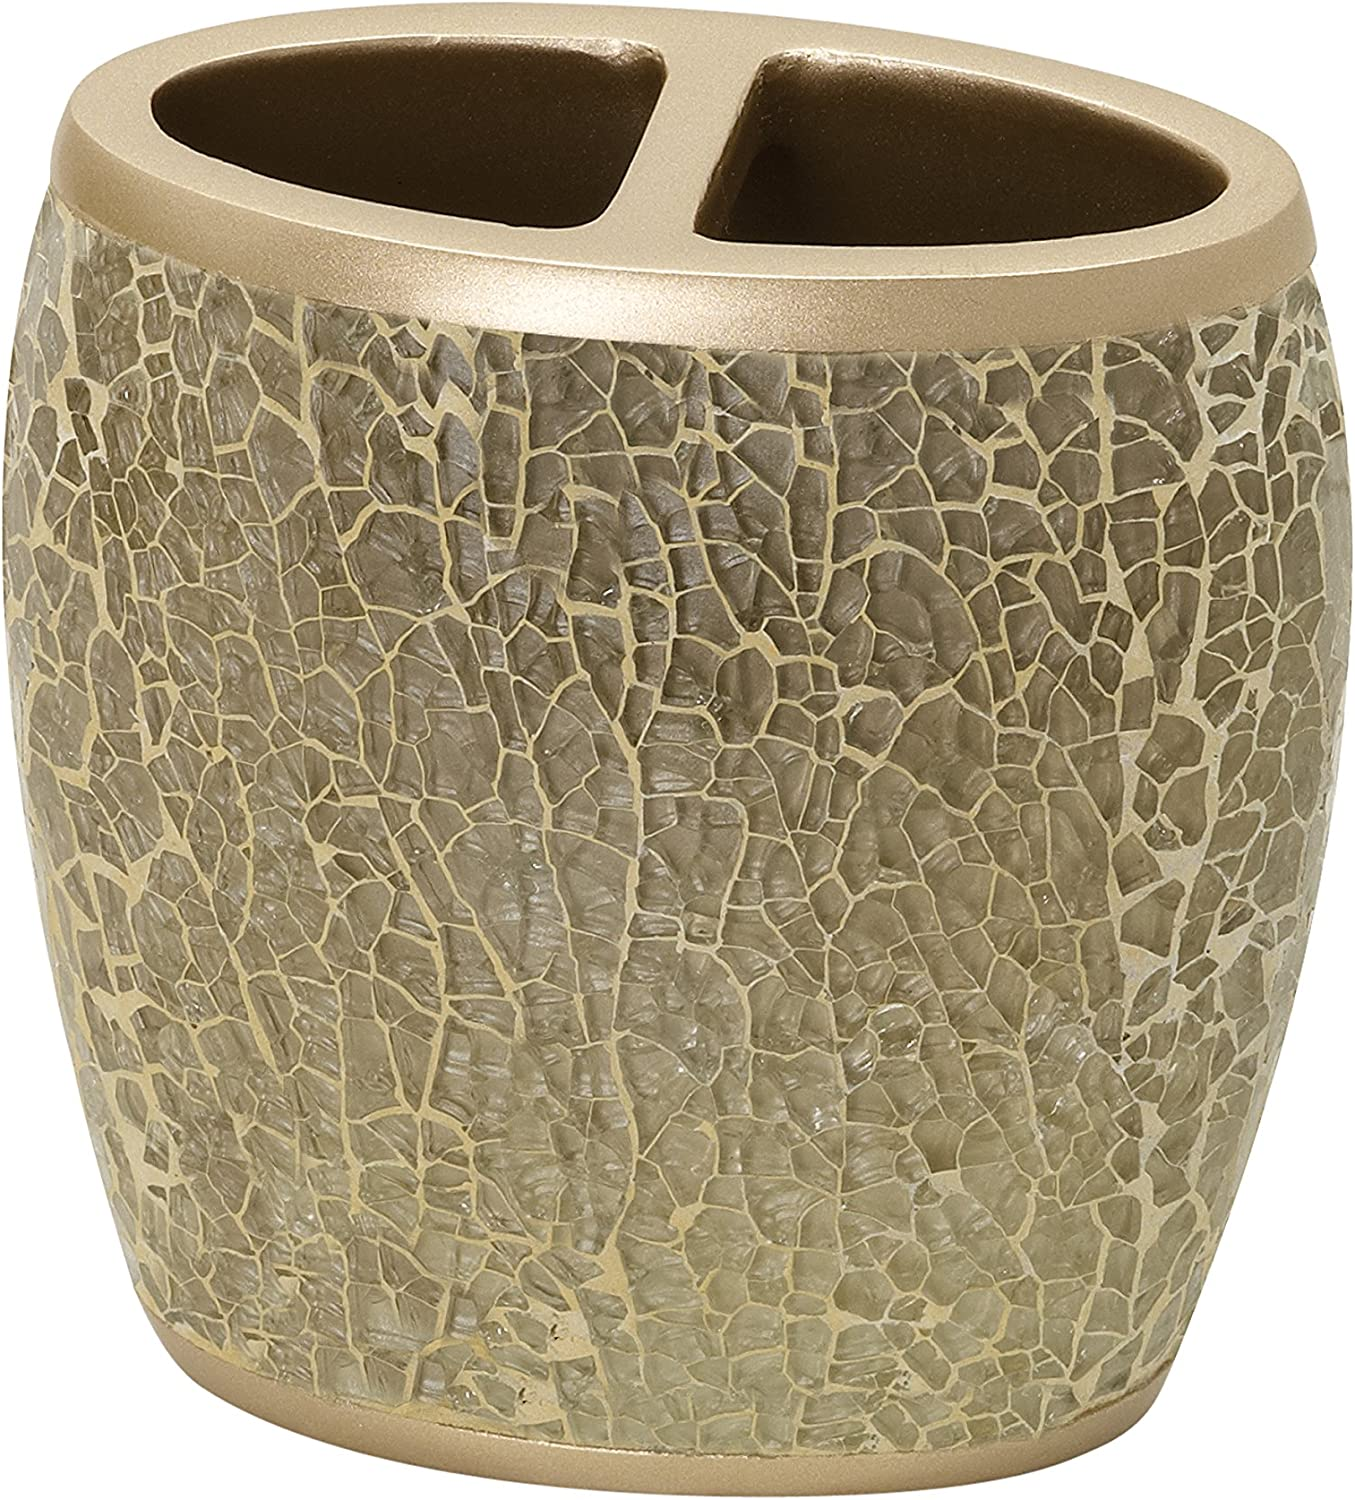 Zenna Home India Ink Huntington Toothbrush Holder, Gold Cracked Glass